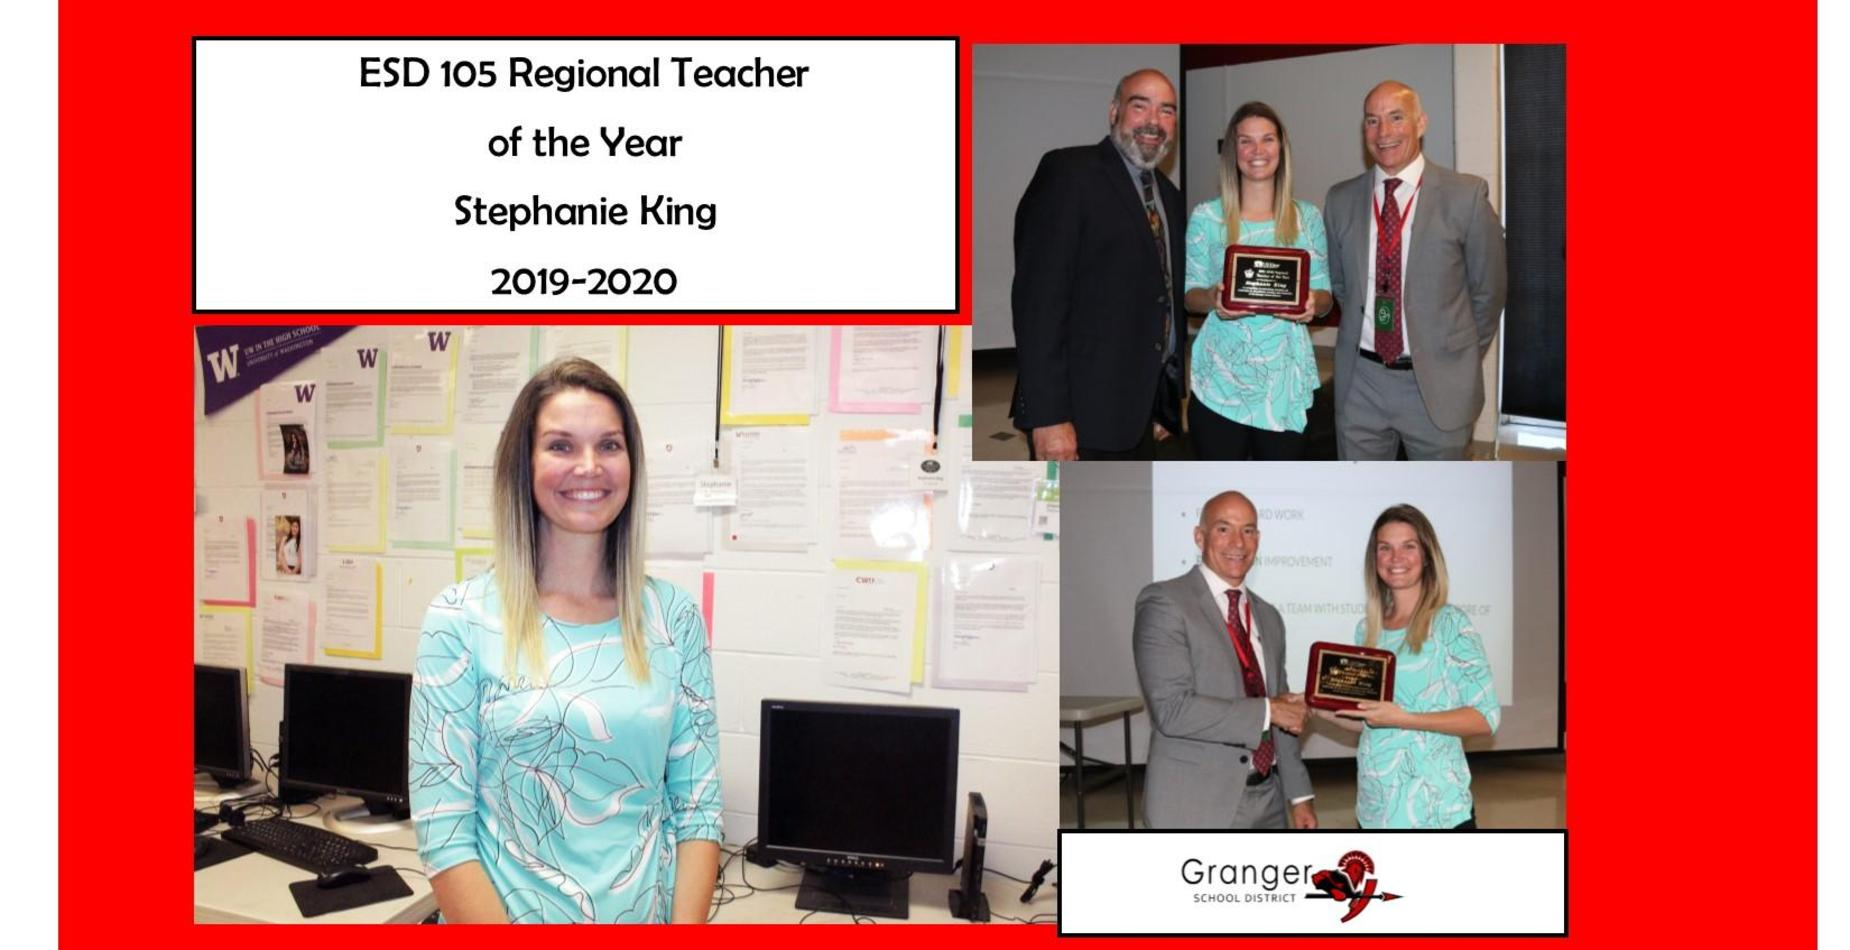 Pictures of Stephanie King, teacher of the year